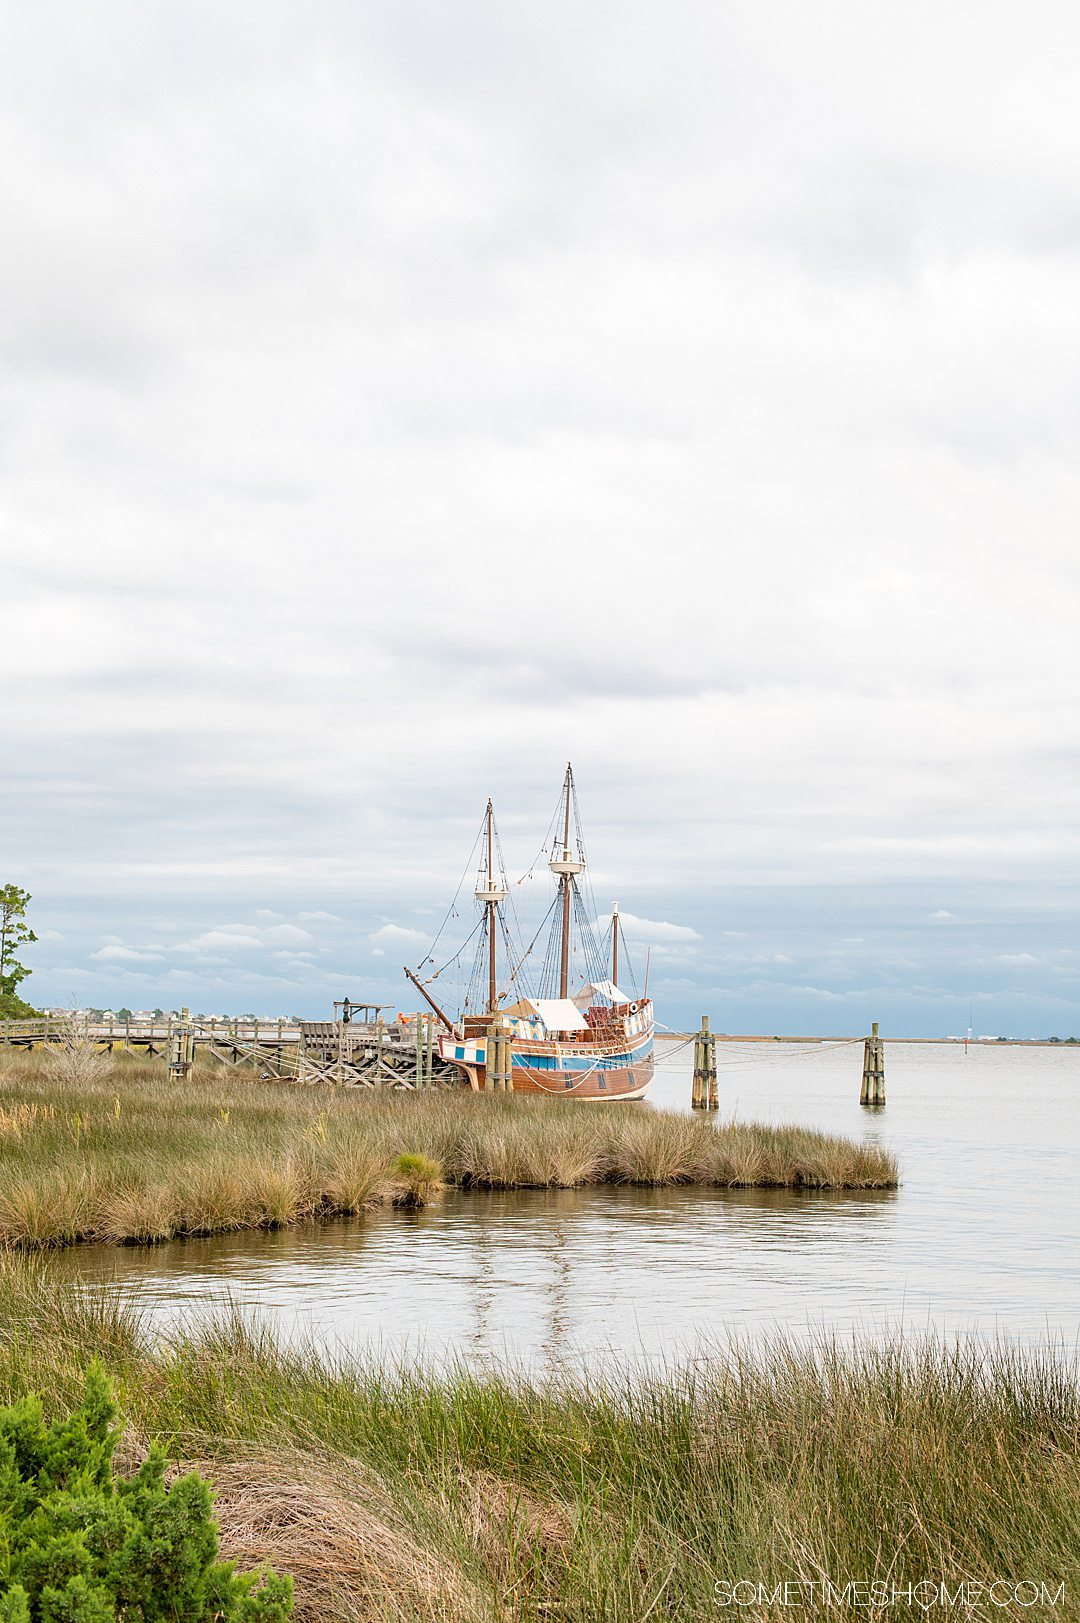 View of an old boat in the harbor on Roanoke Island in the Outer Banks.